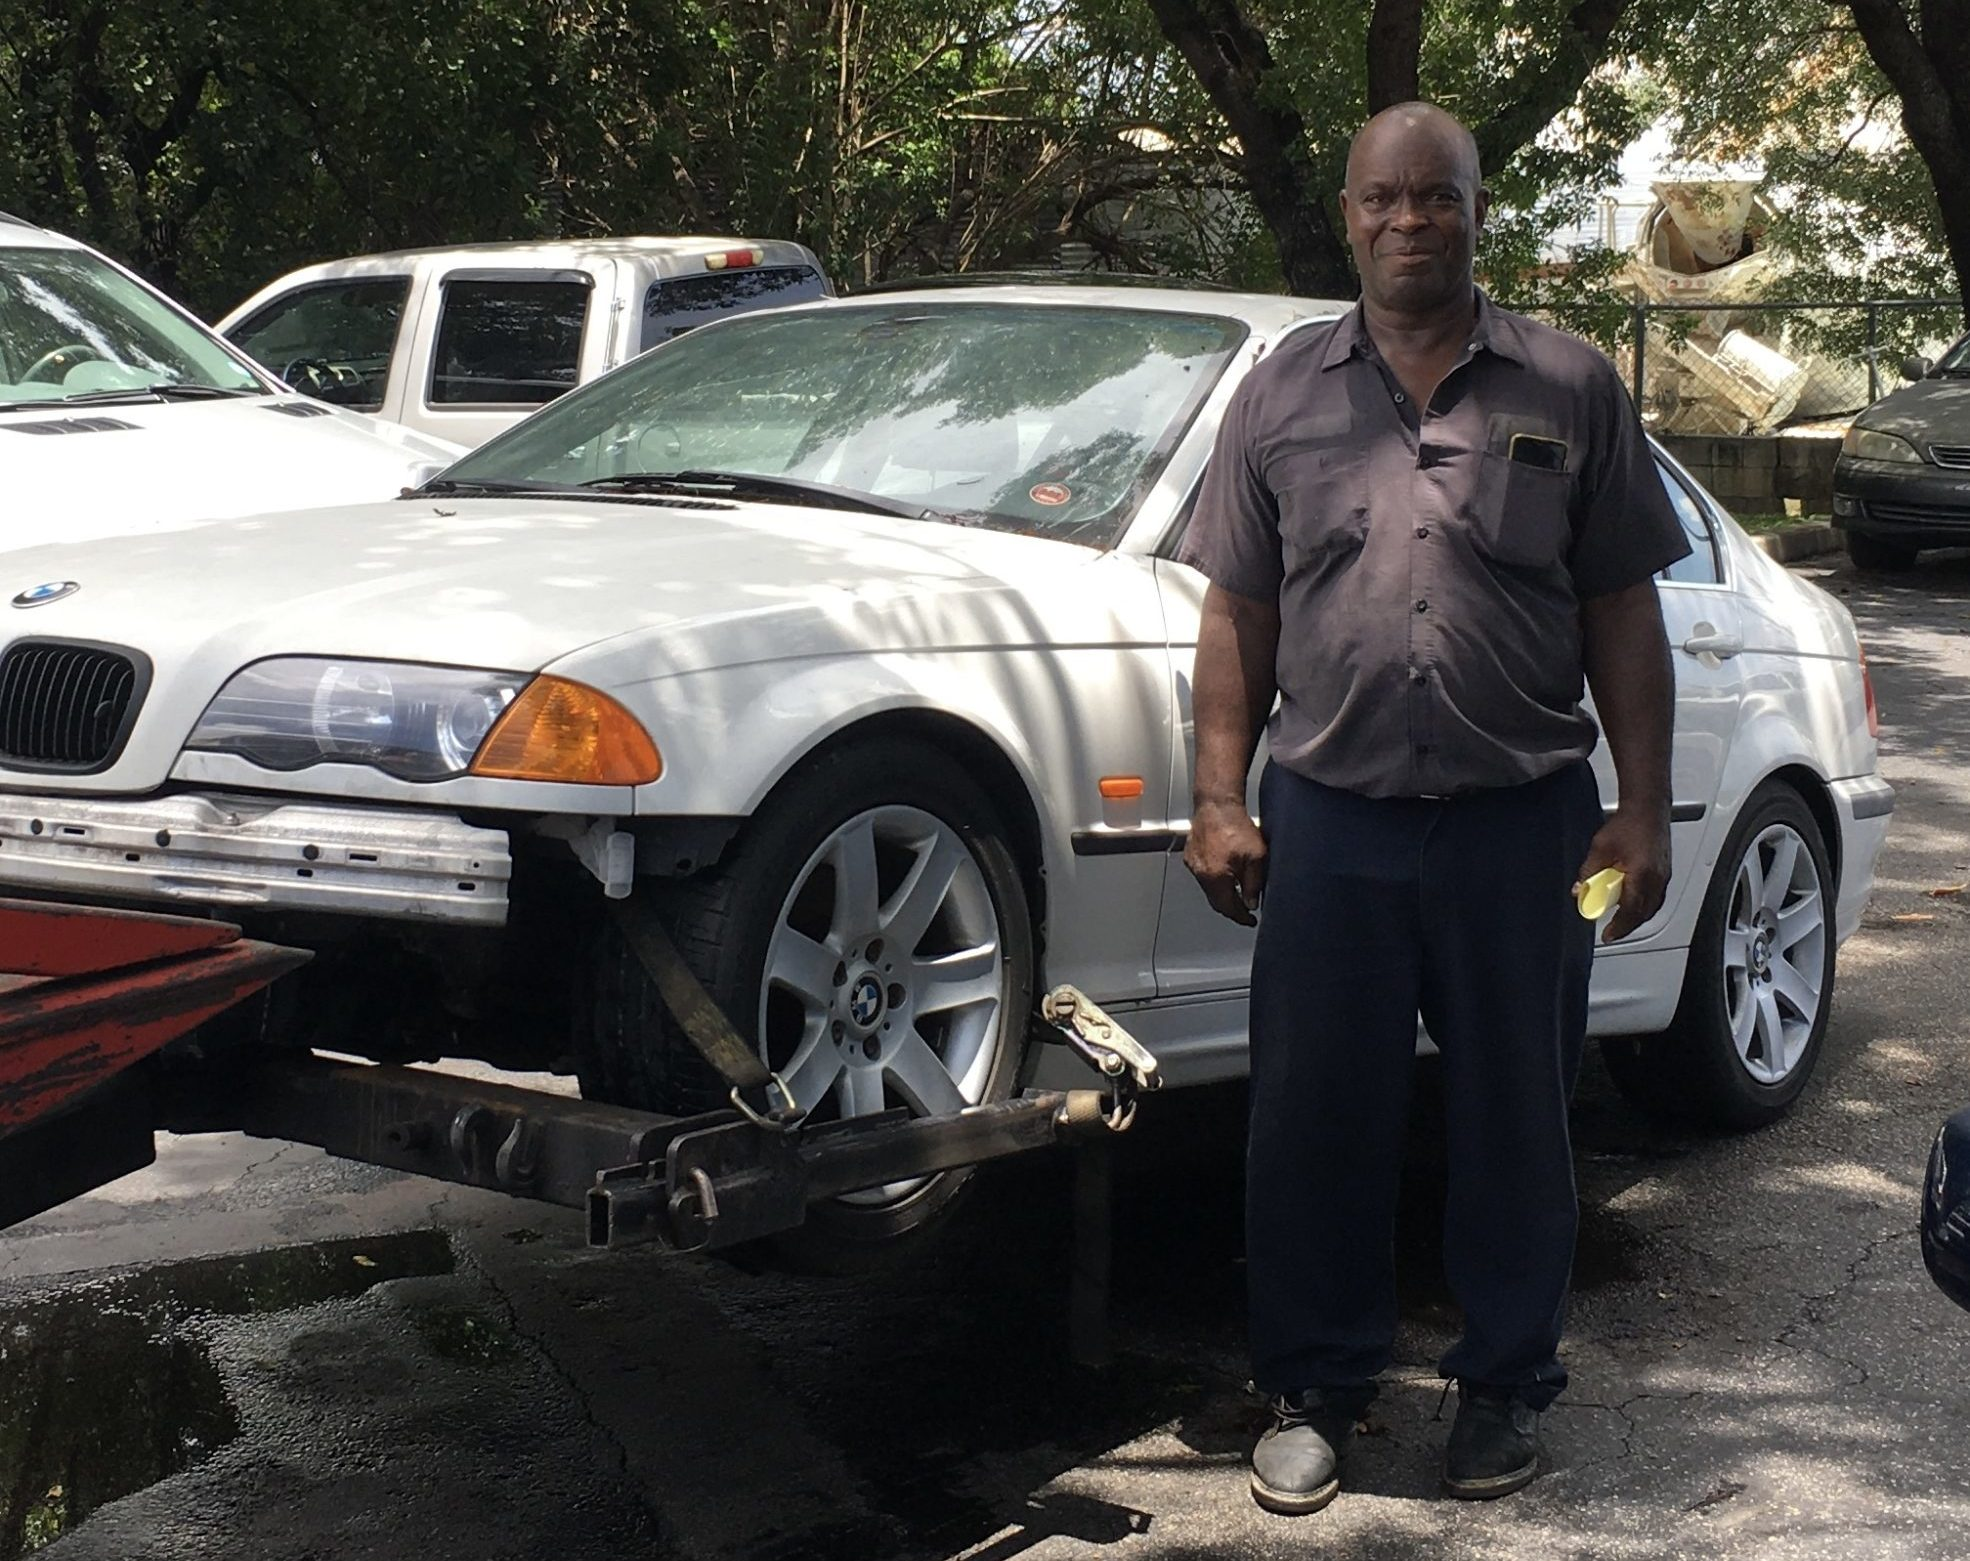 Who Gives The Best Price For Junk Cars?